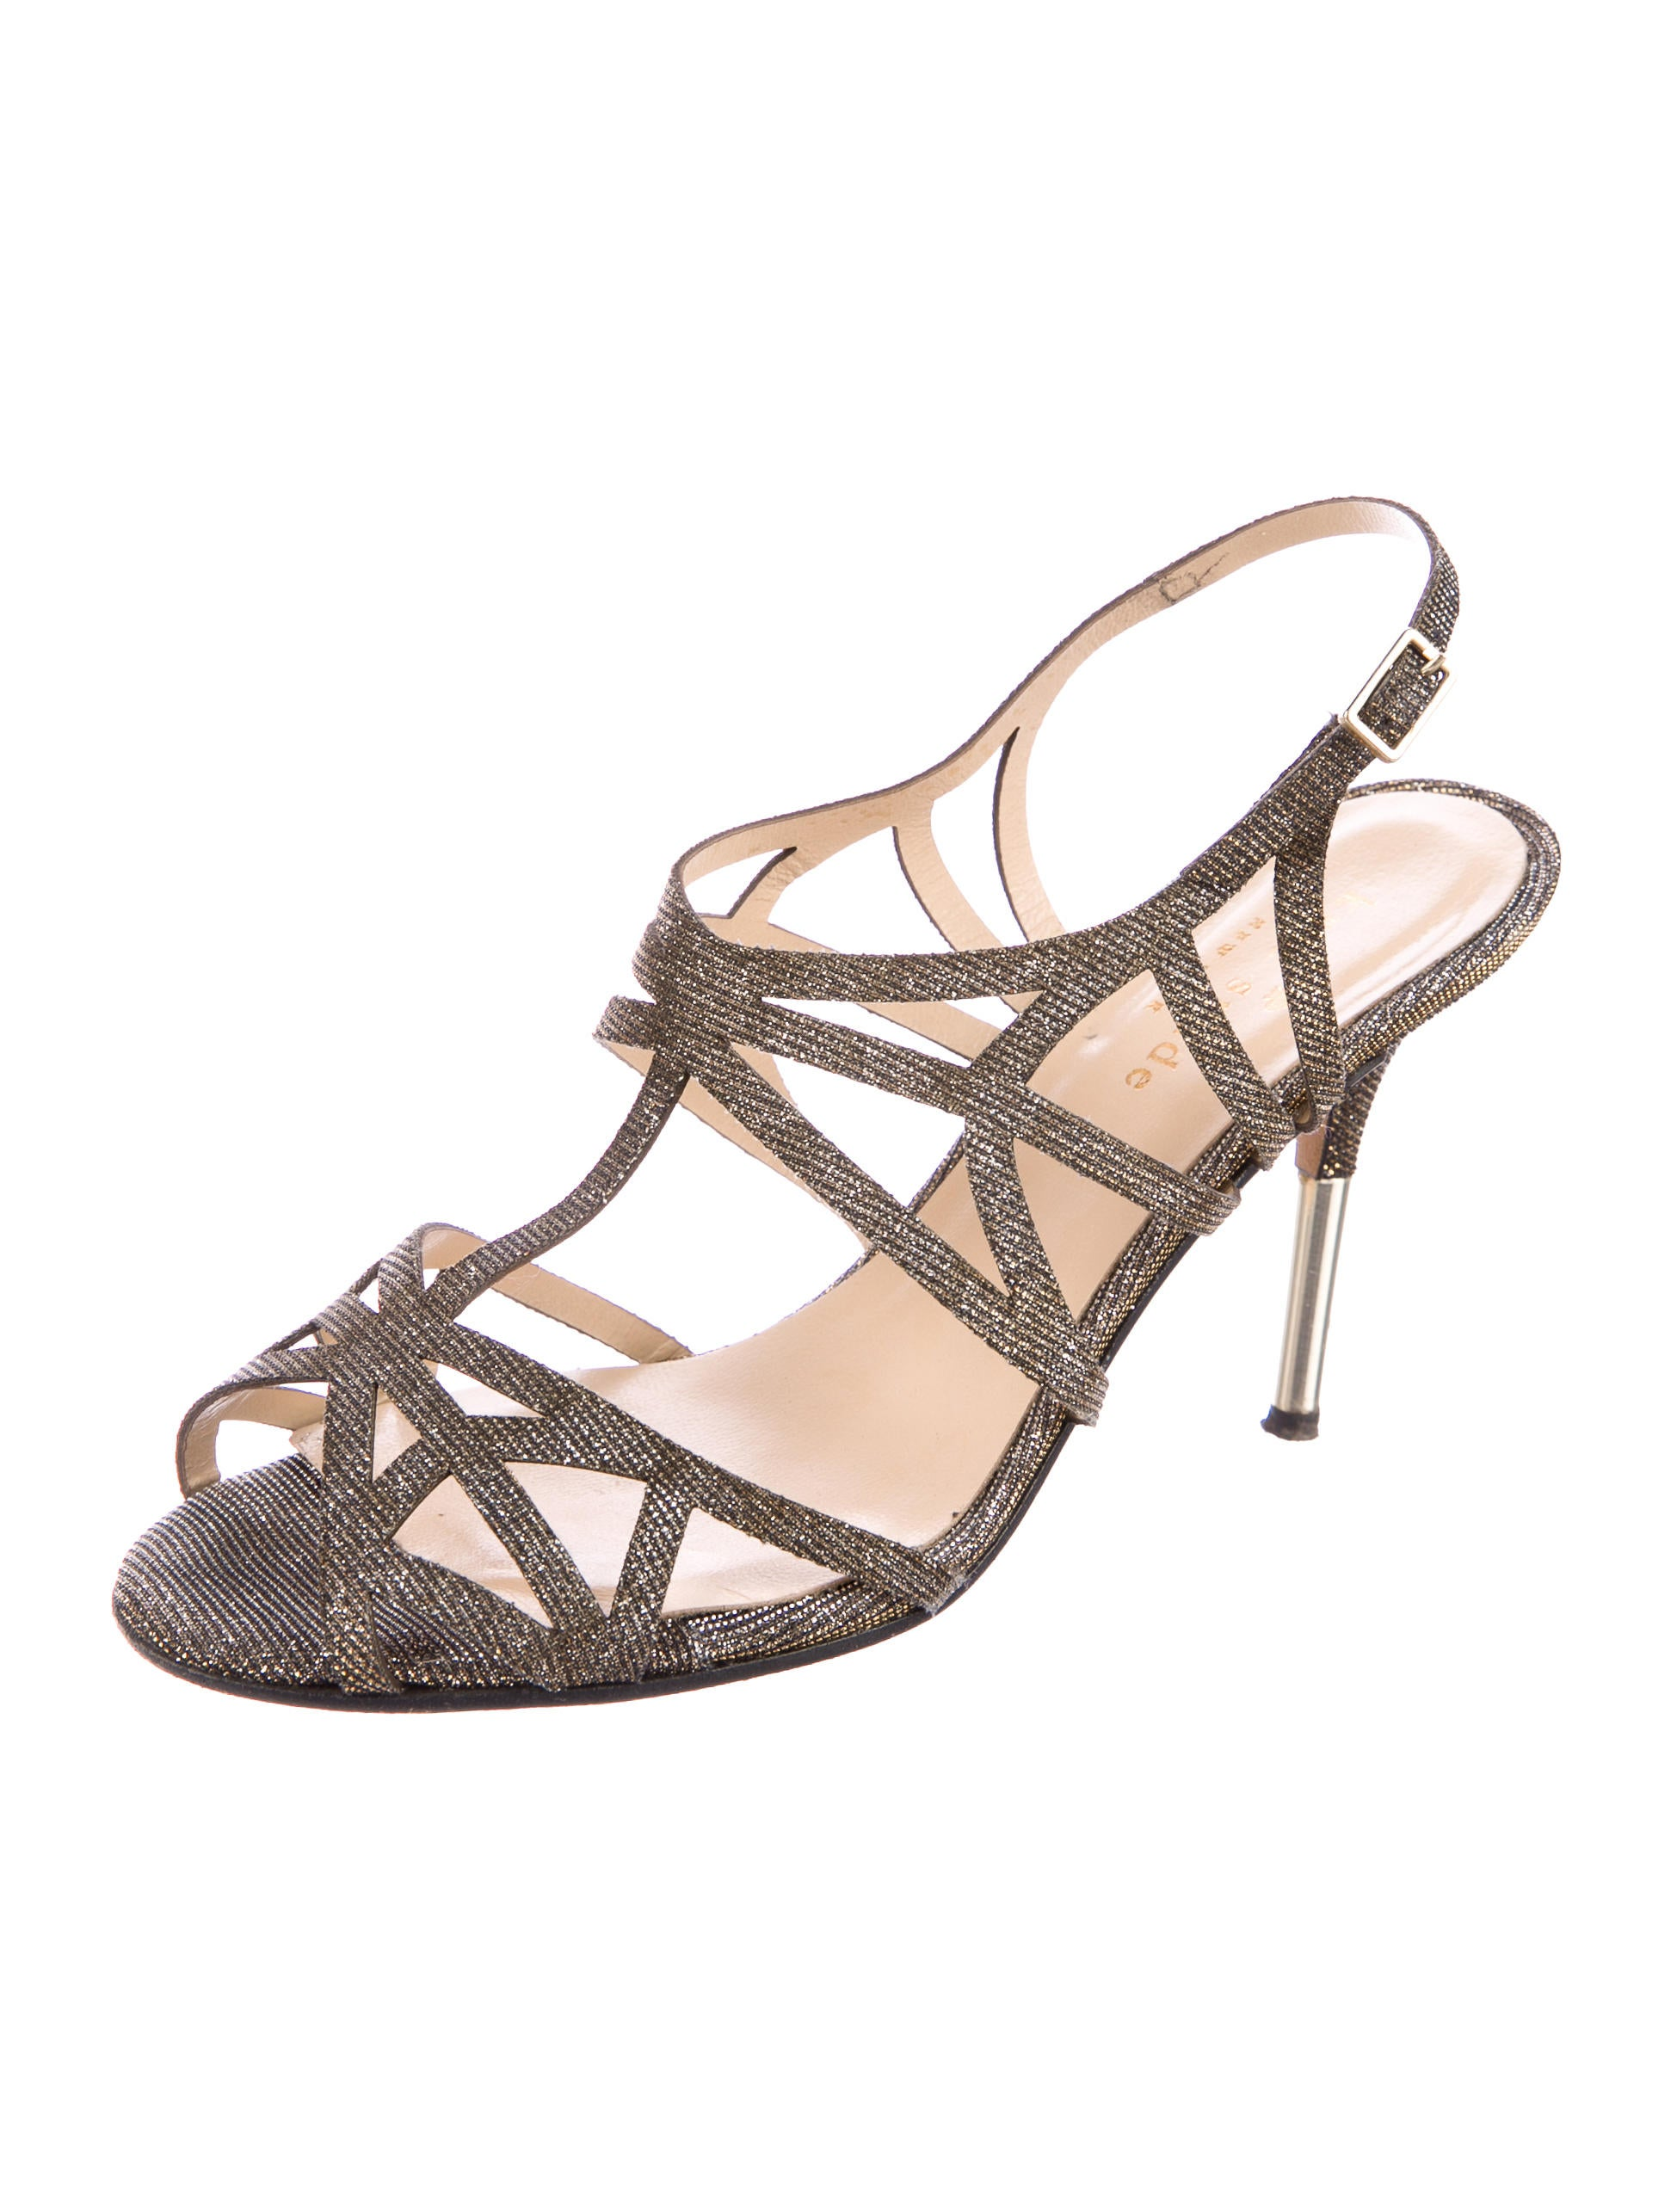 Kate Spade New York Metallic Caged Sandals cheap sale footlocker pictures free shipping high quality largest supplier online buy cheap reliable cheap sale websites fz1mJ